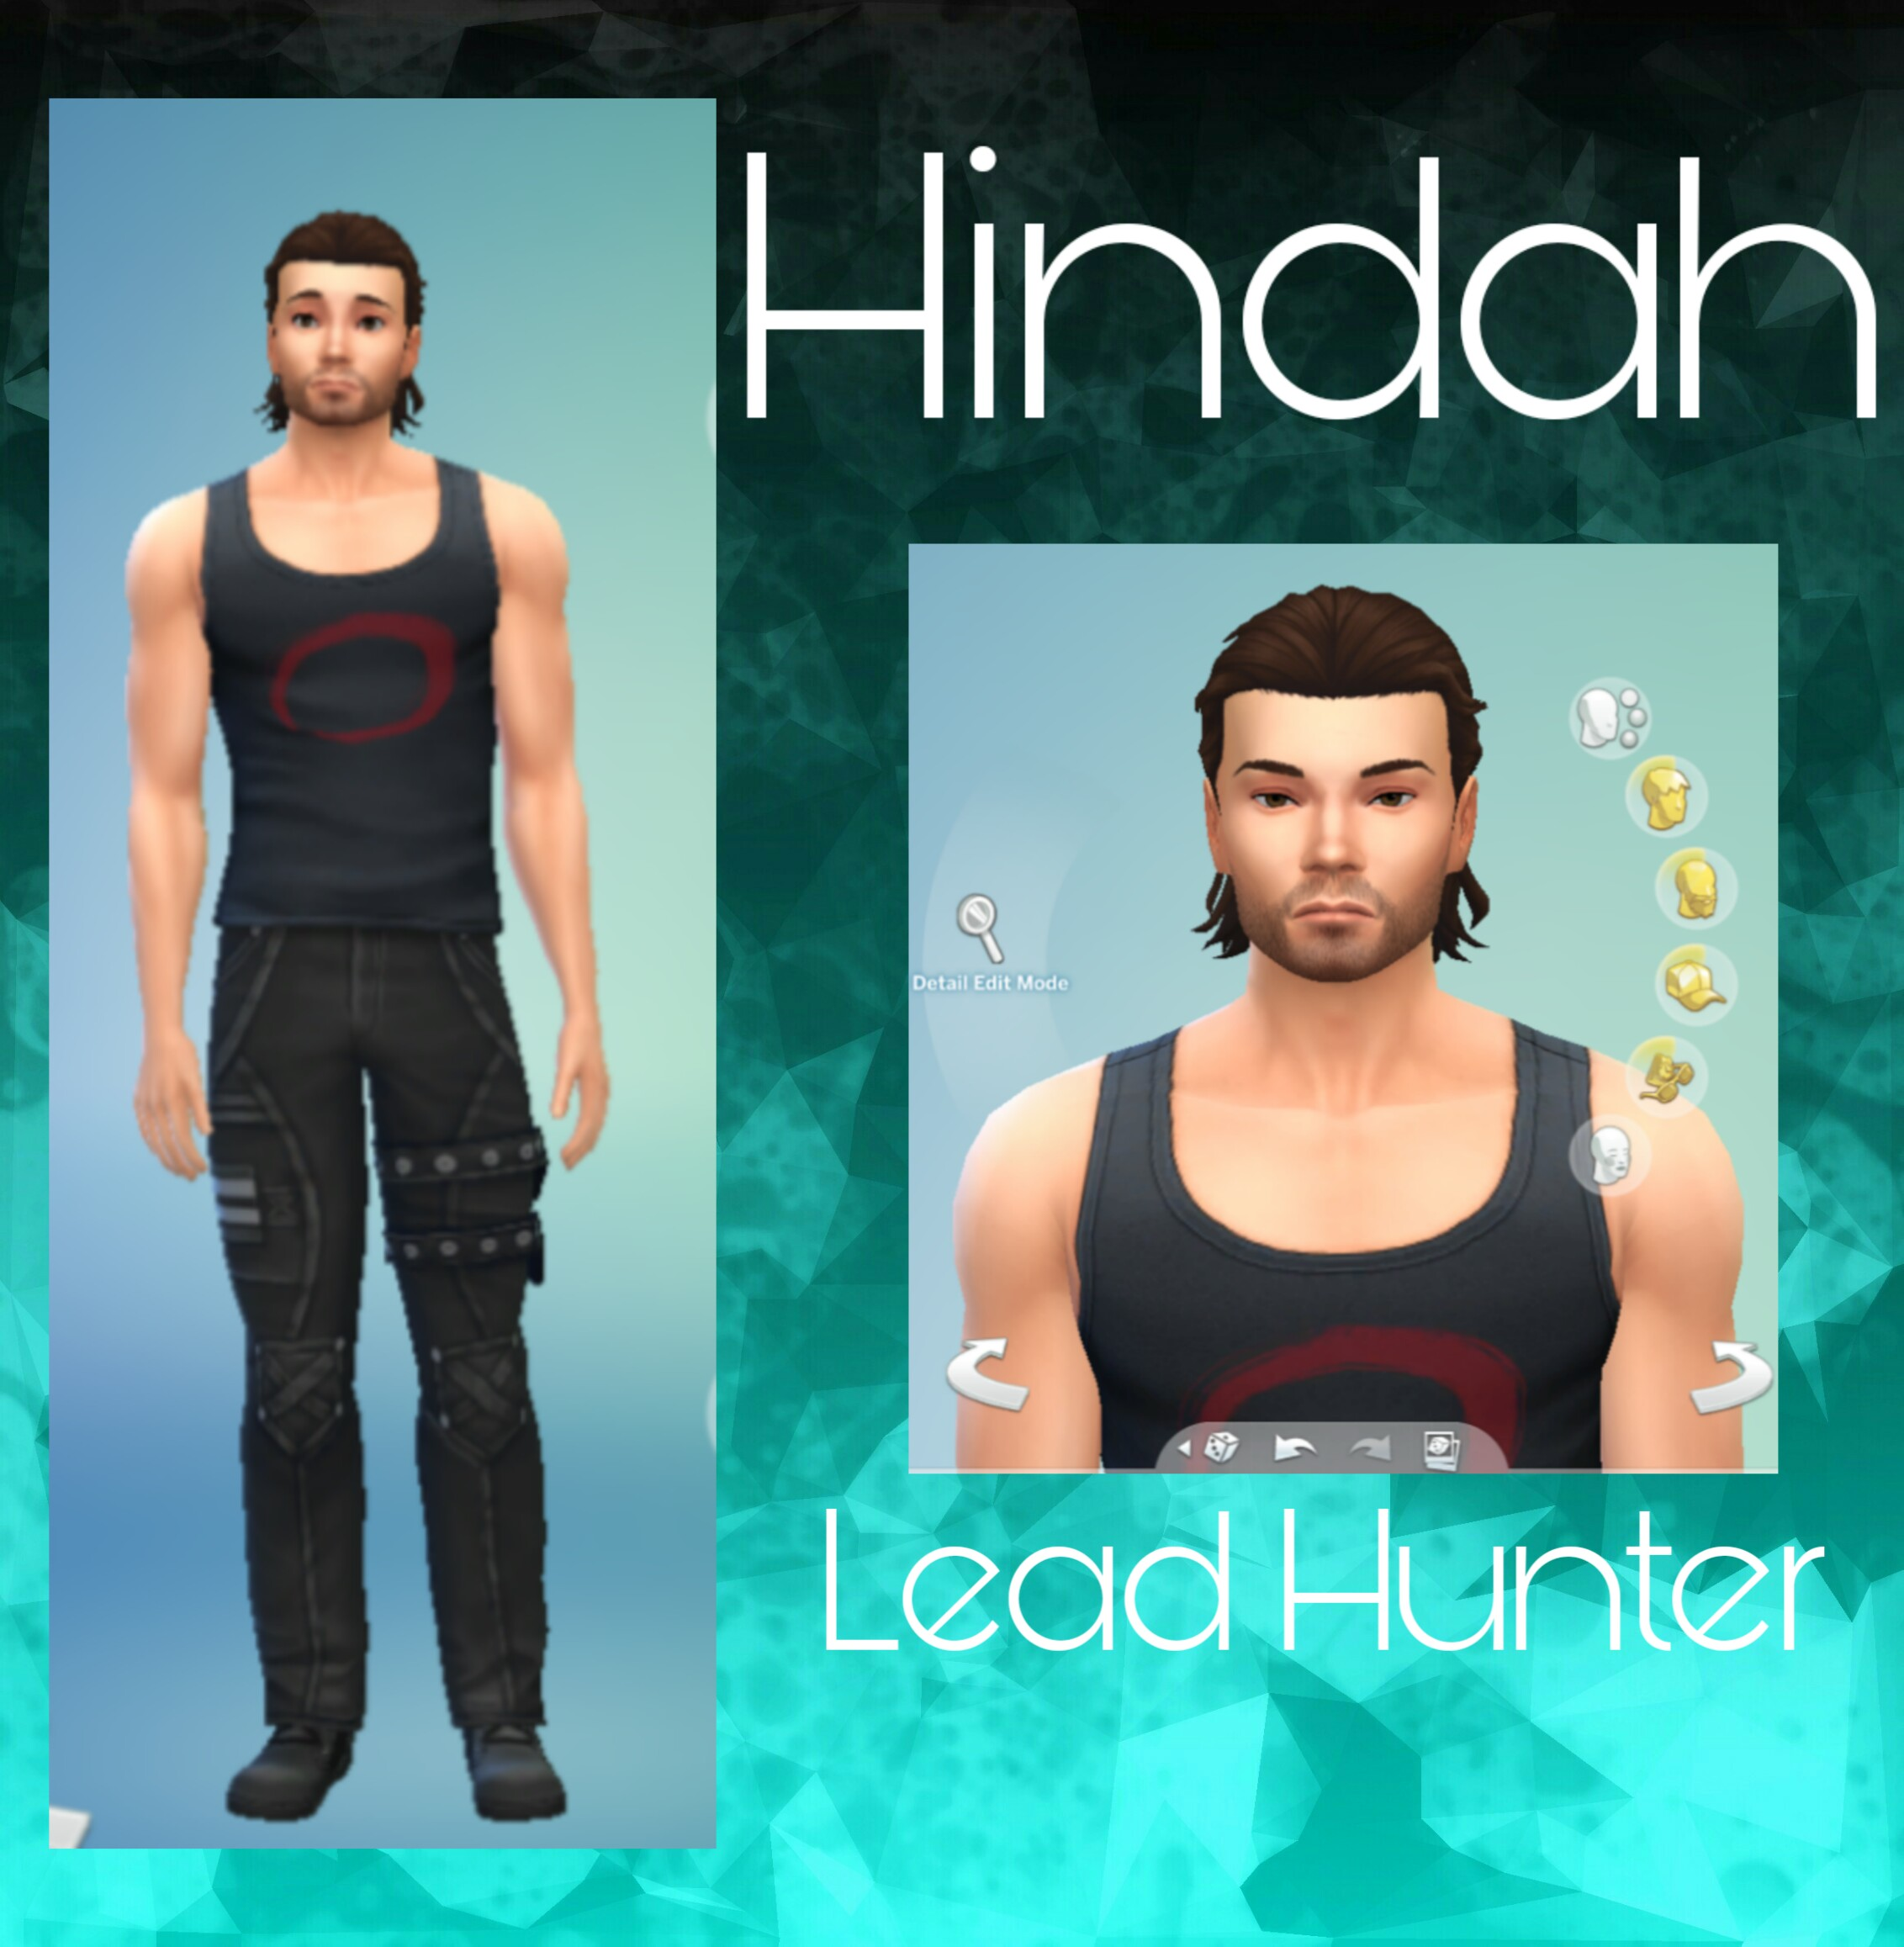 Not Who You Think: A Detailed Look At Hindah